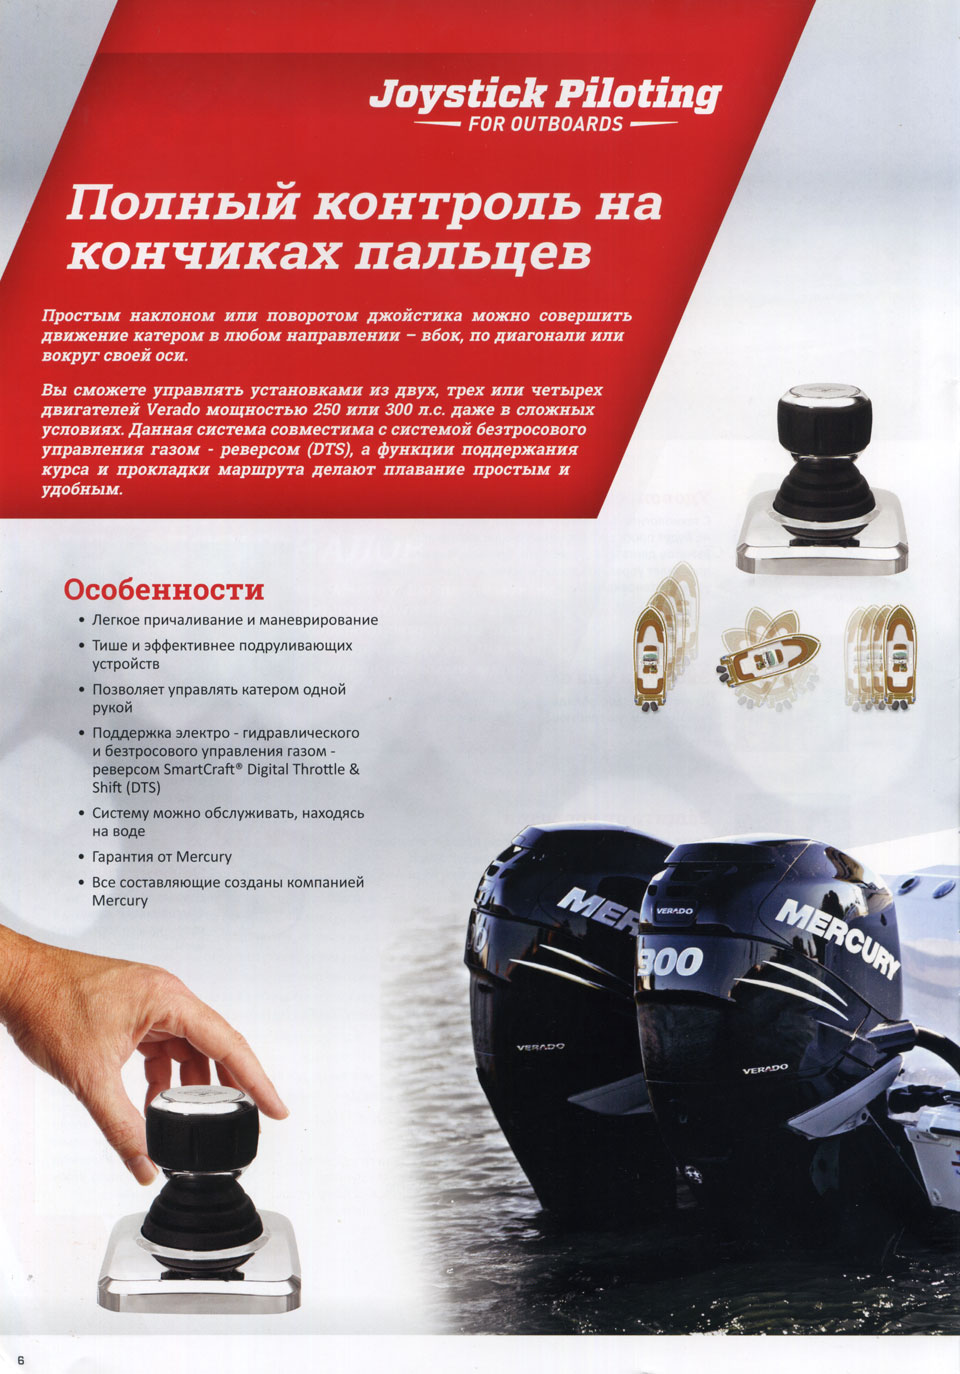 технология Mercury 2013 Joystick Piloting